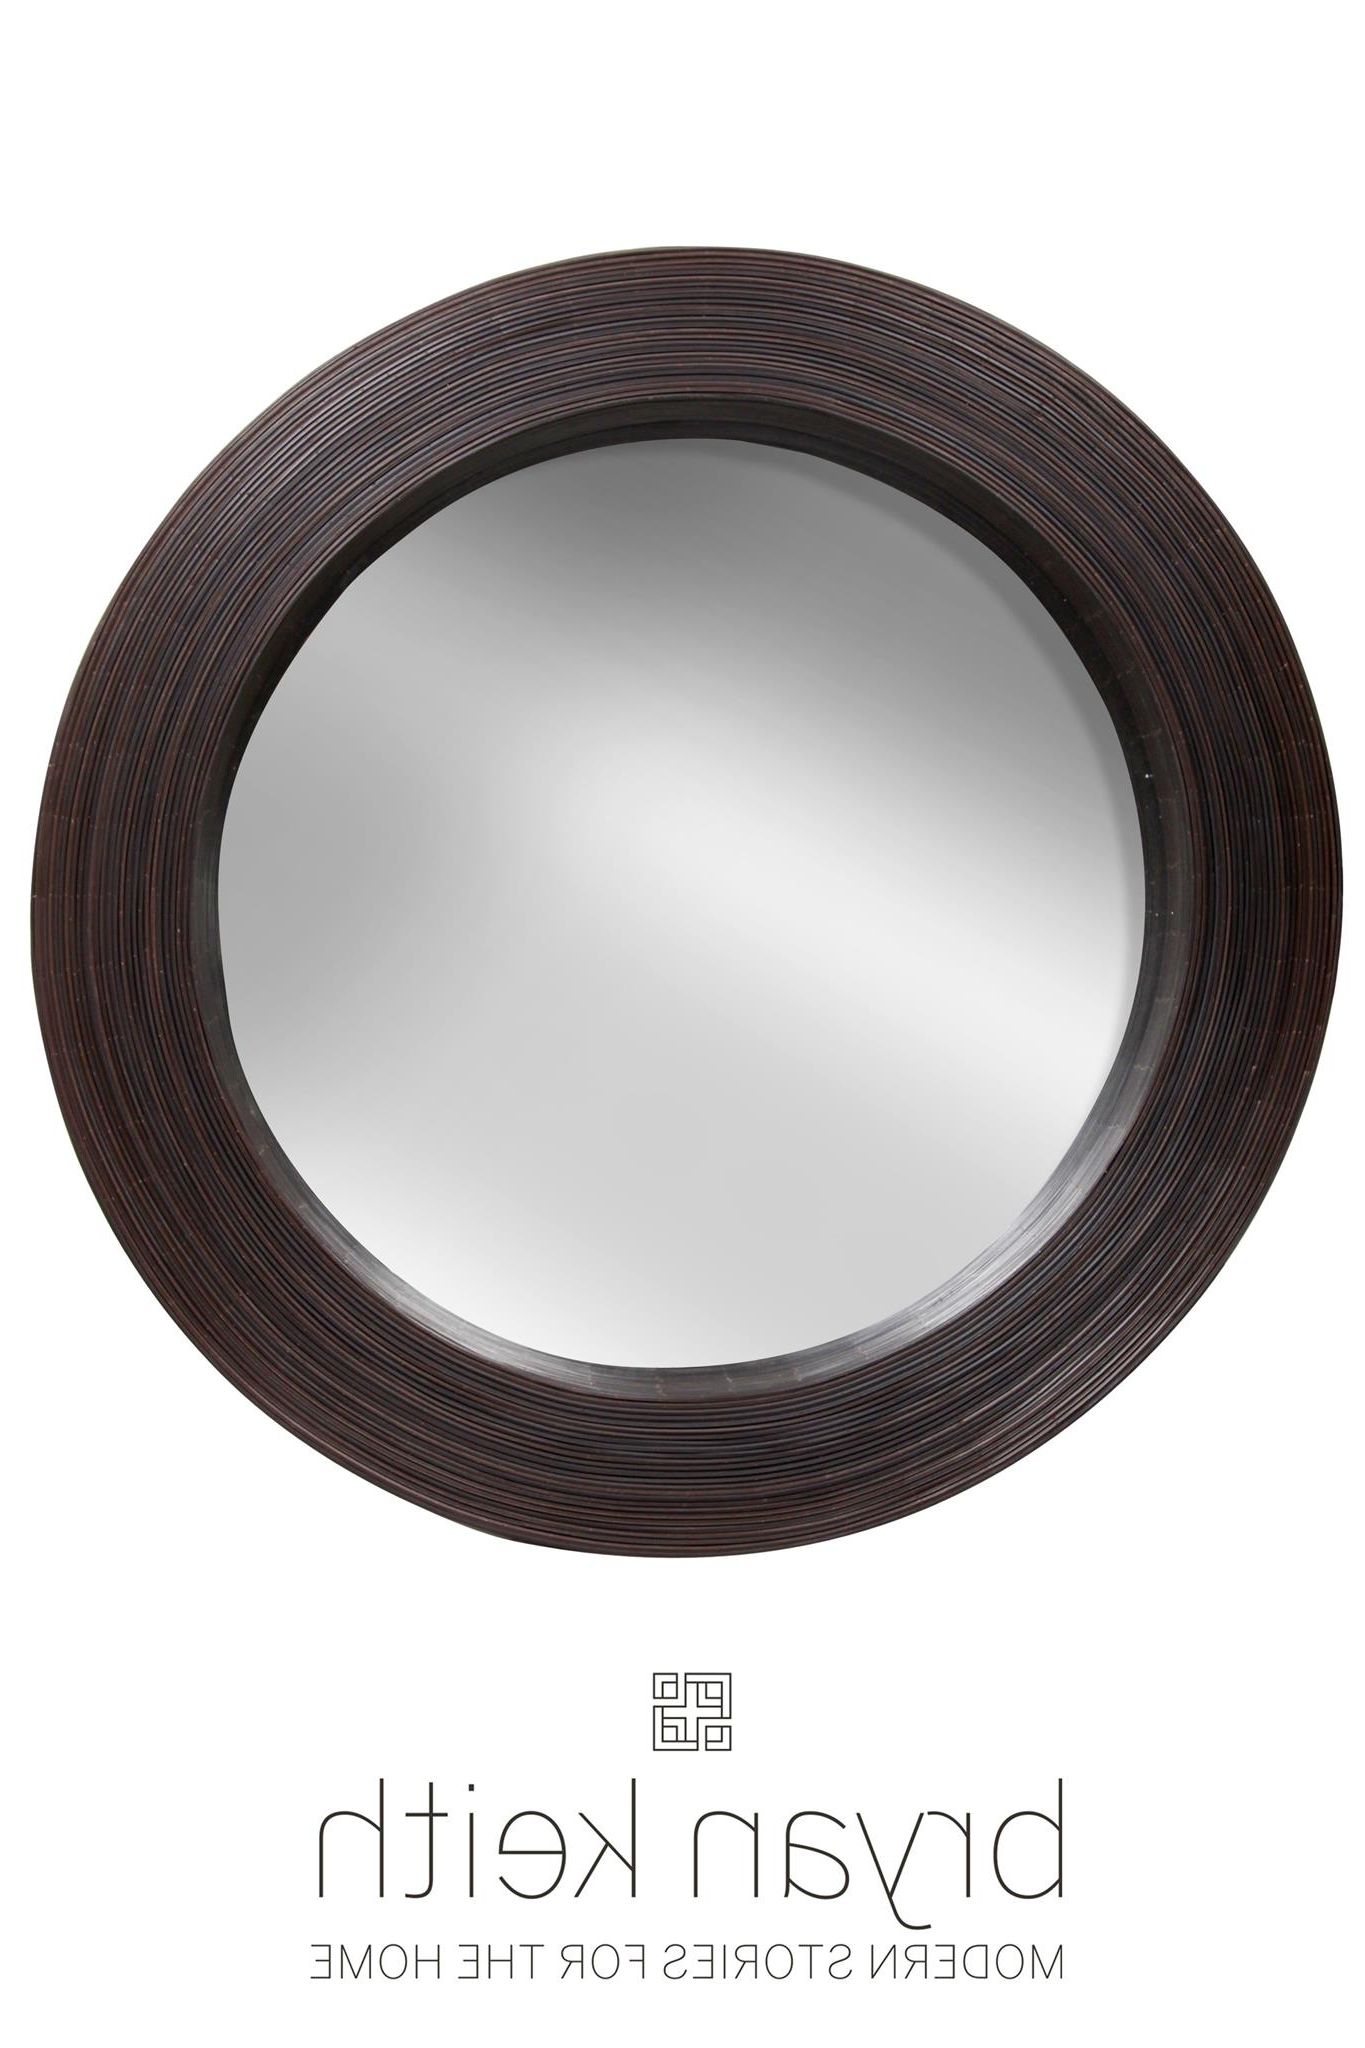 Fashionable Wood And Rattan Round Wall Mirror Intended For Black Round Wall Mirrors (View 9 of 20)